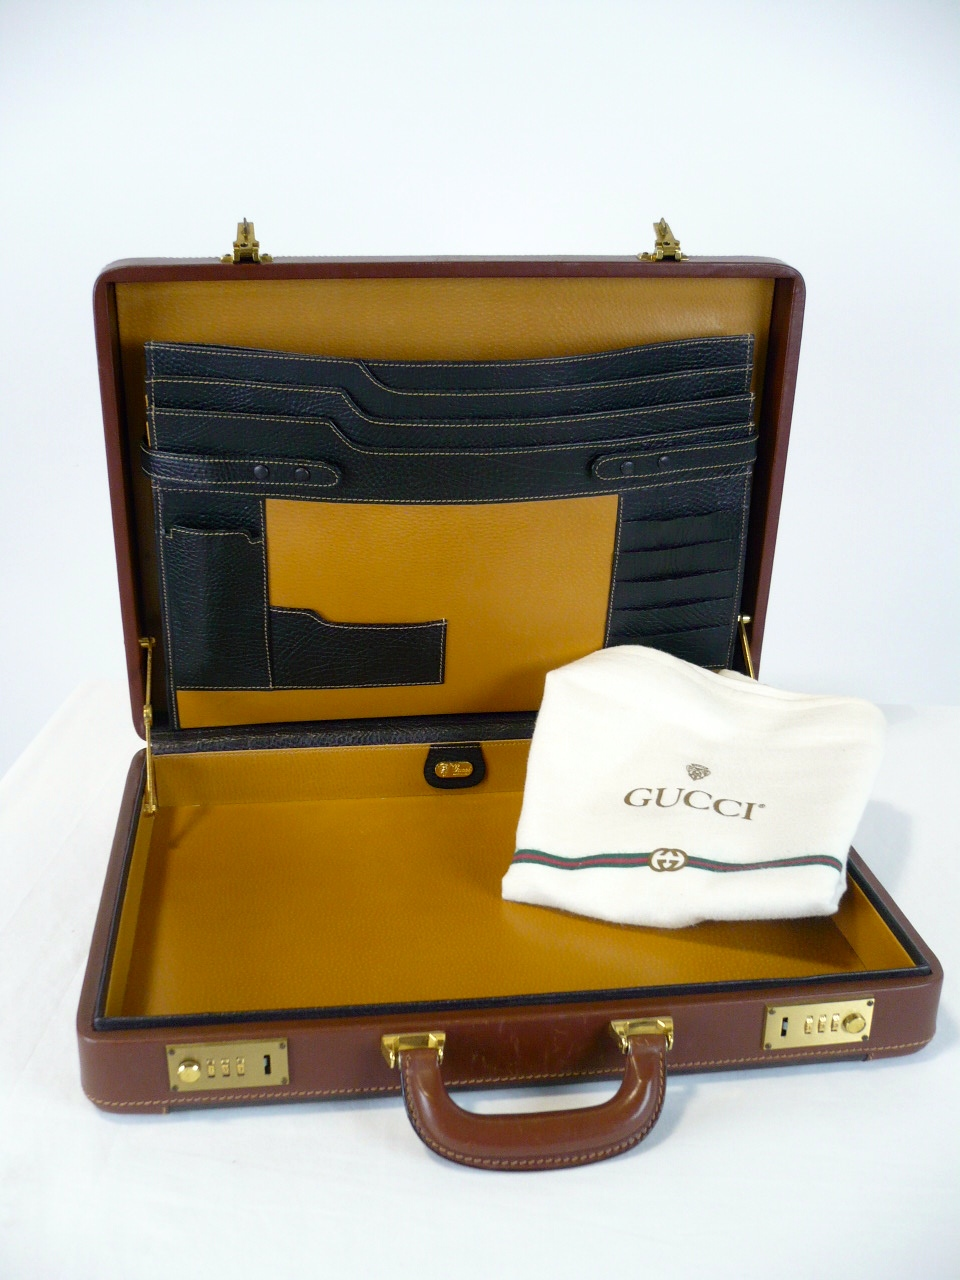 Gucci briefcase with felt bag, interior.jpg